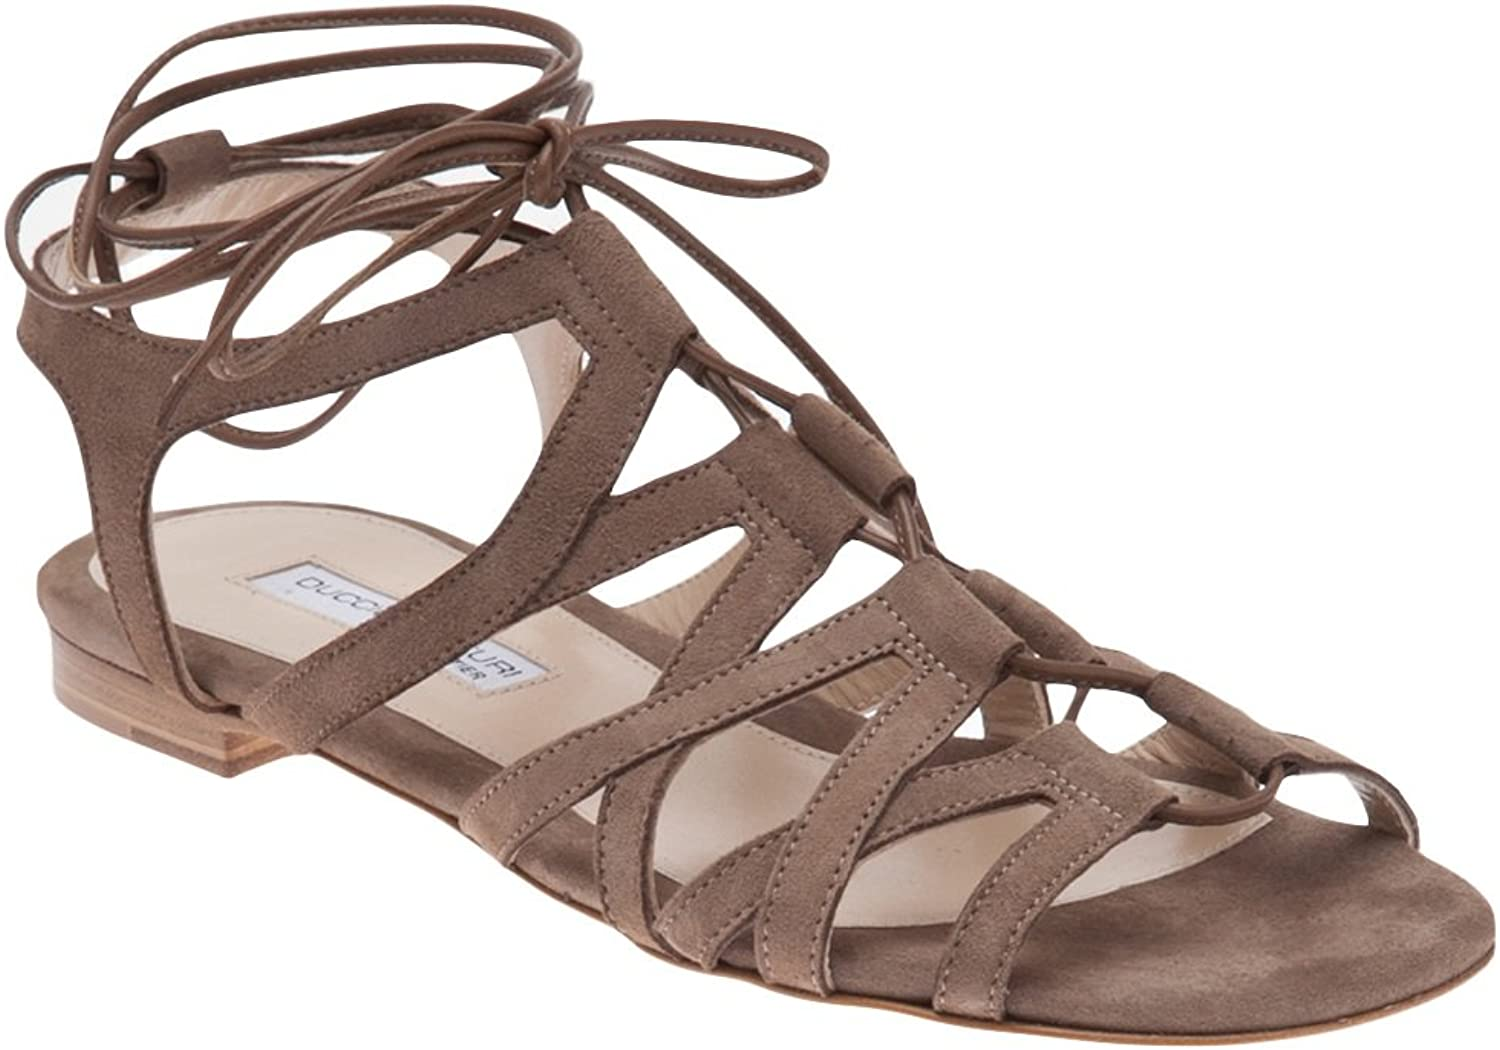 Duccio Venturi Beige Greek Sandals 36.5